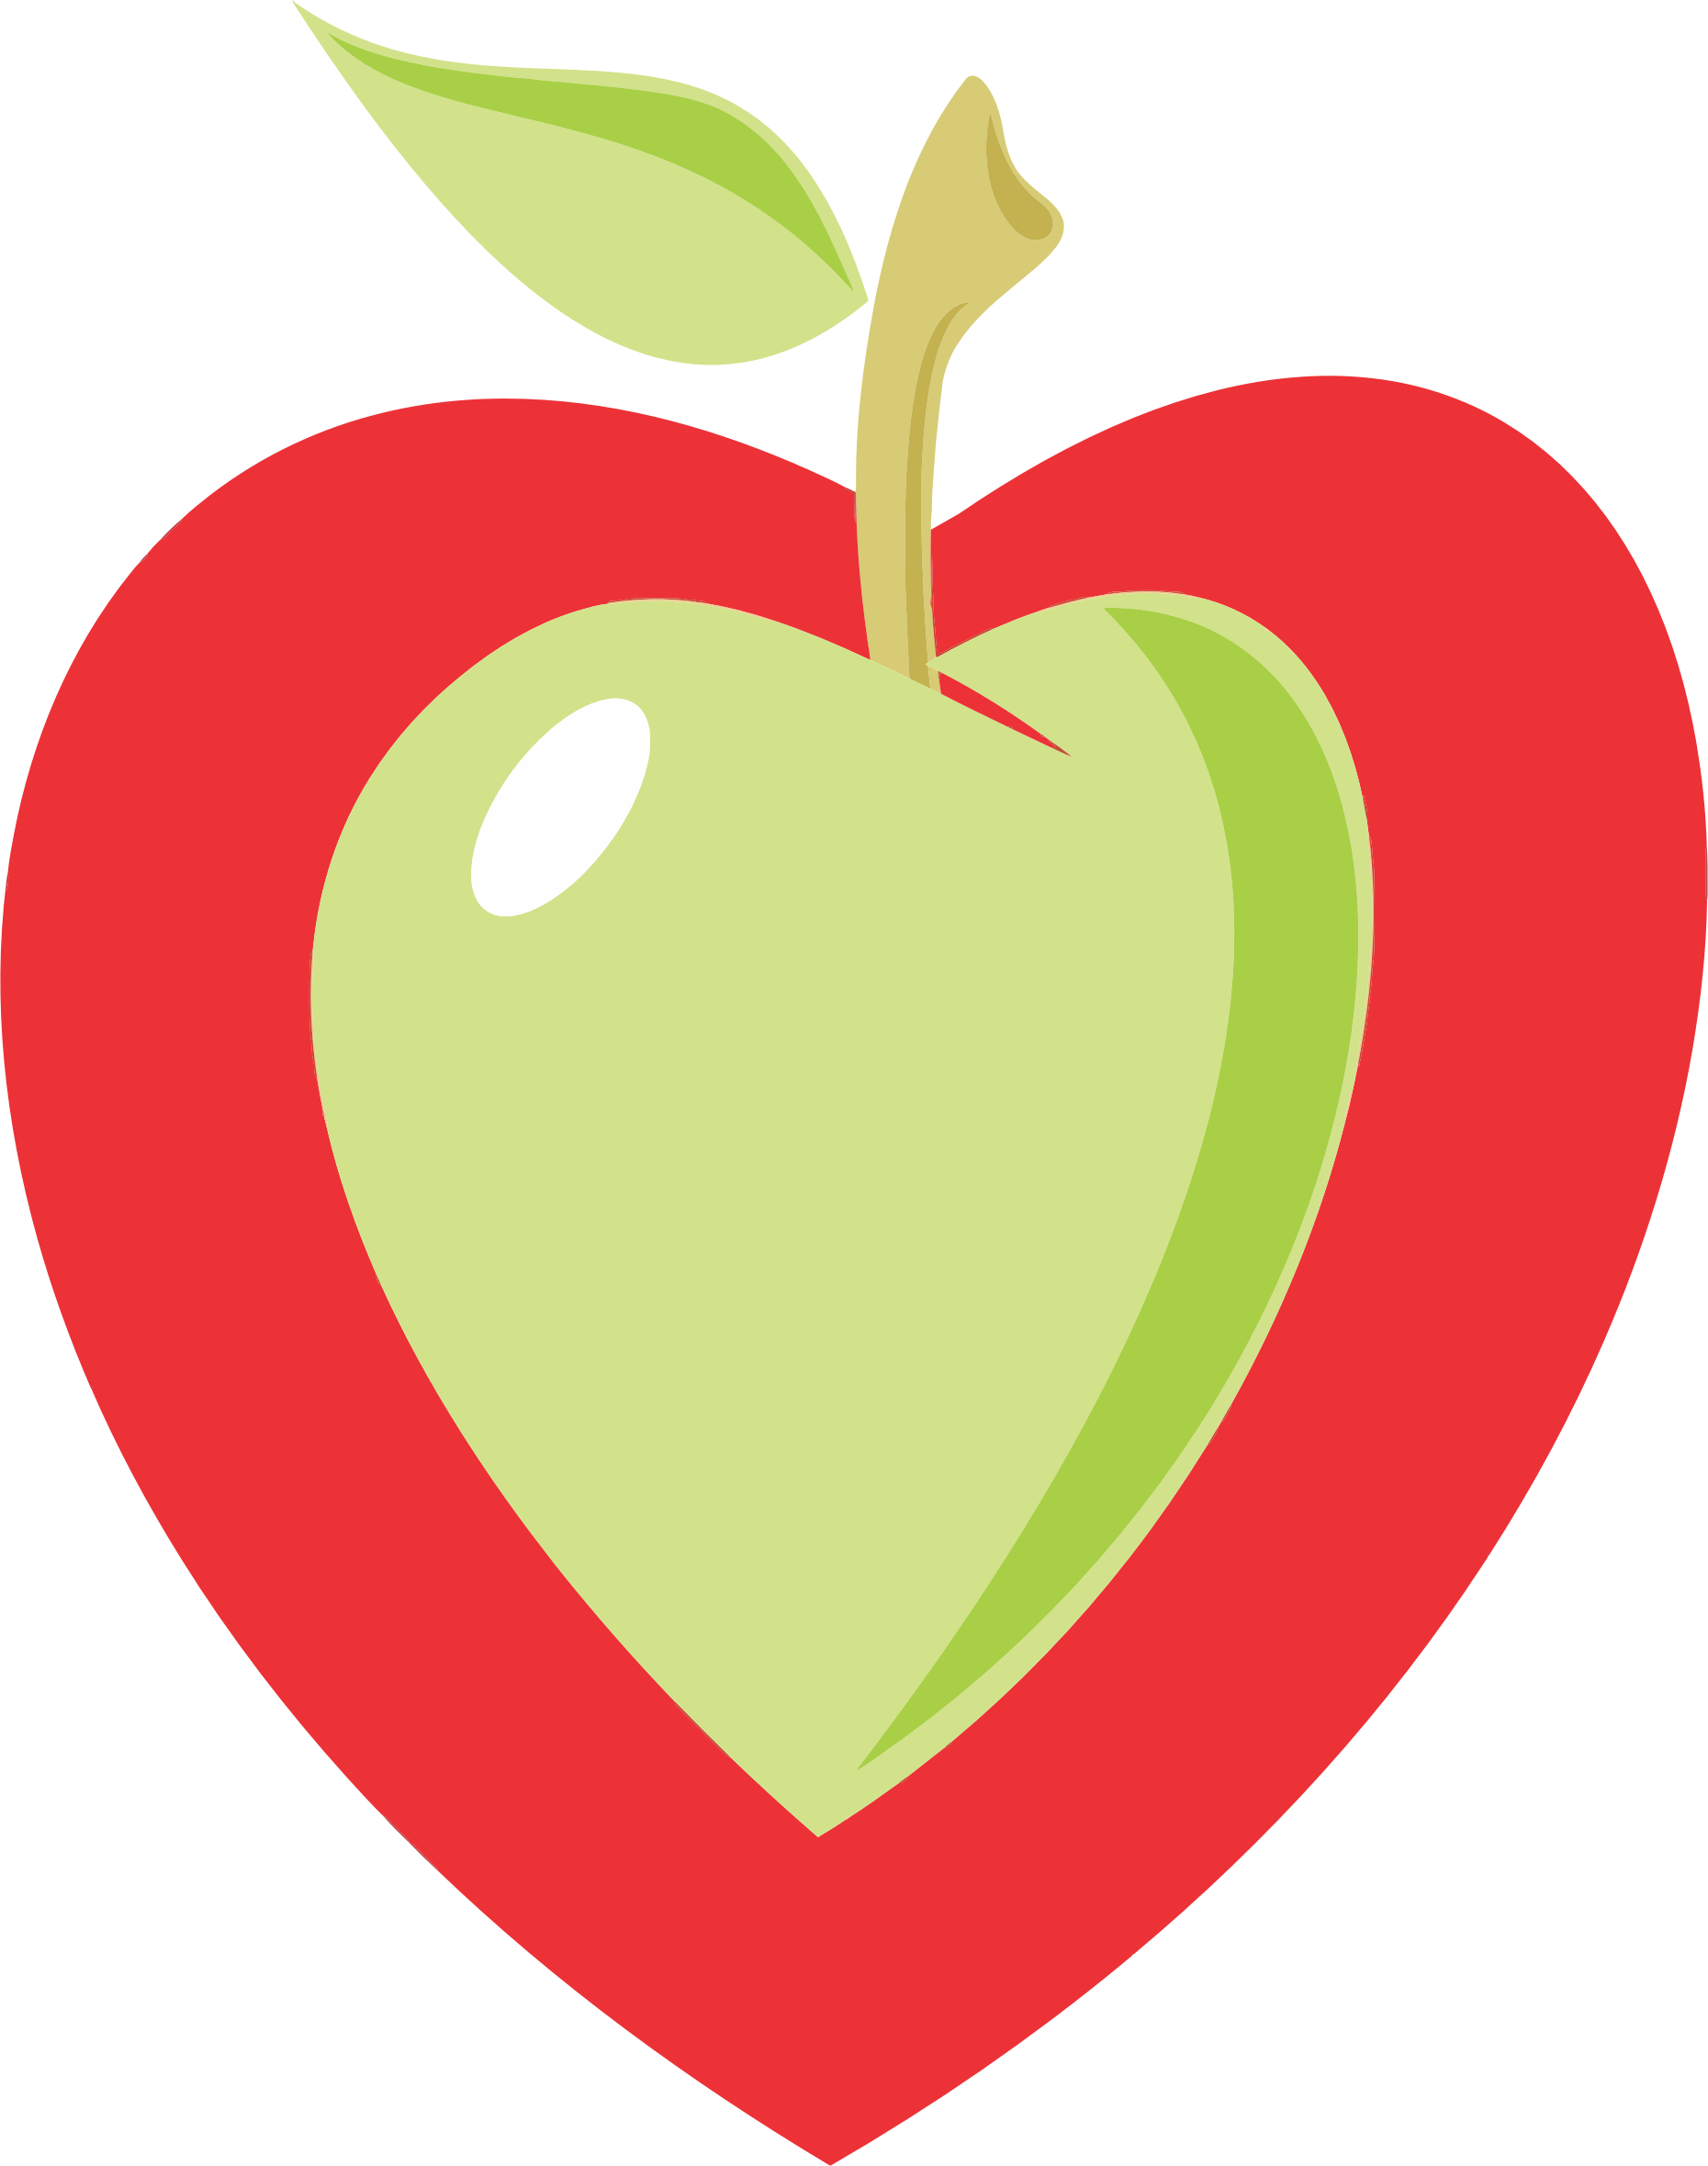 Heart apple clipart clip library Best Apple Heart Clipart Design - Vector Art Library clip library